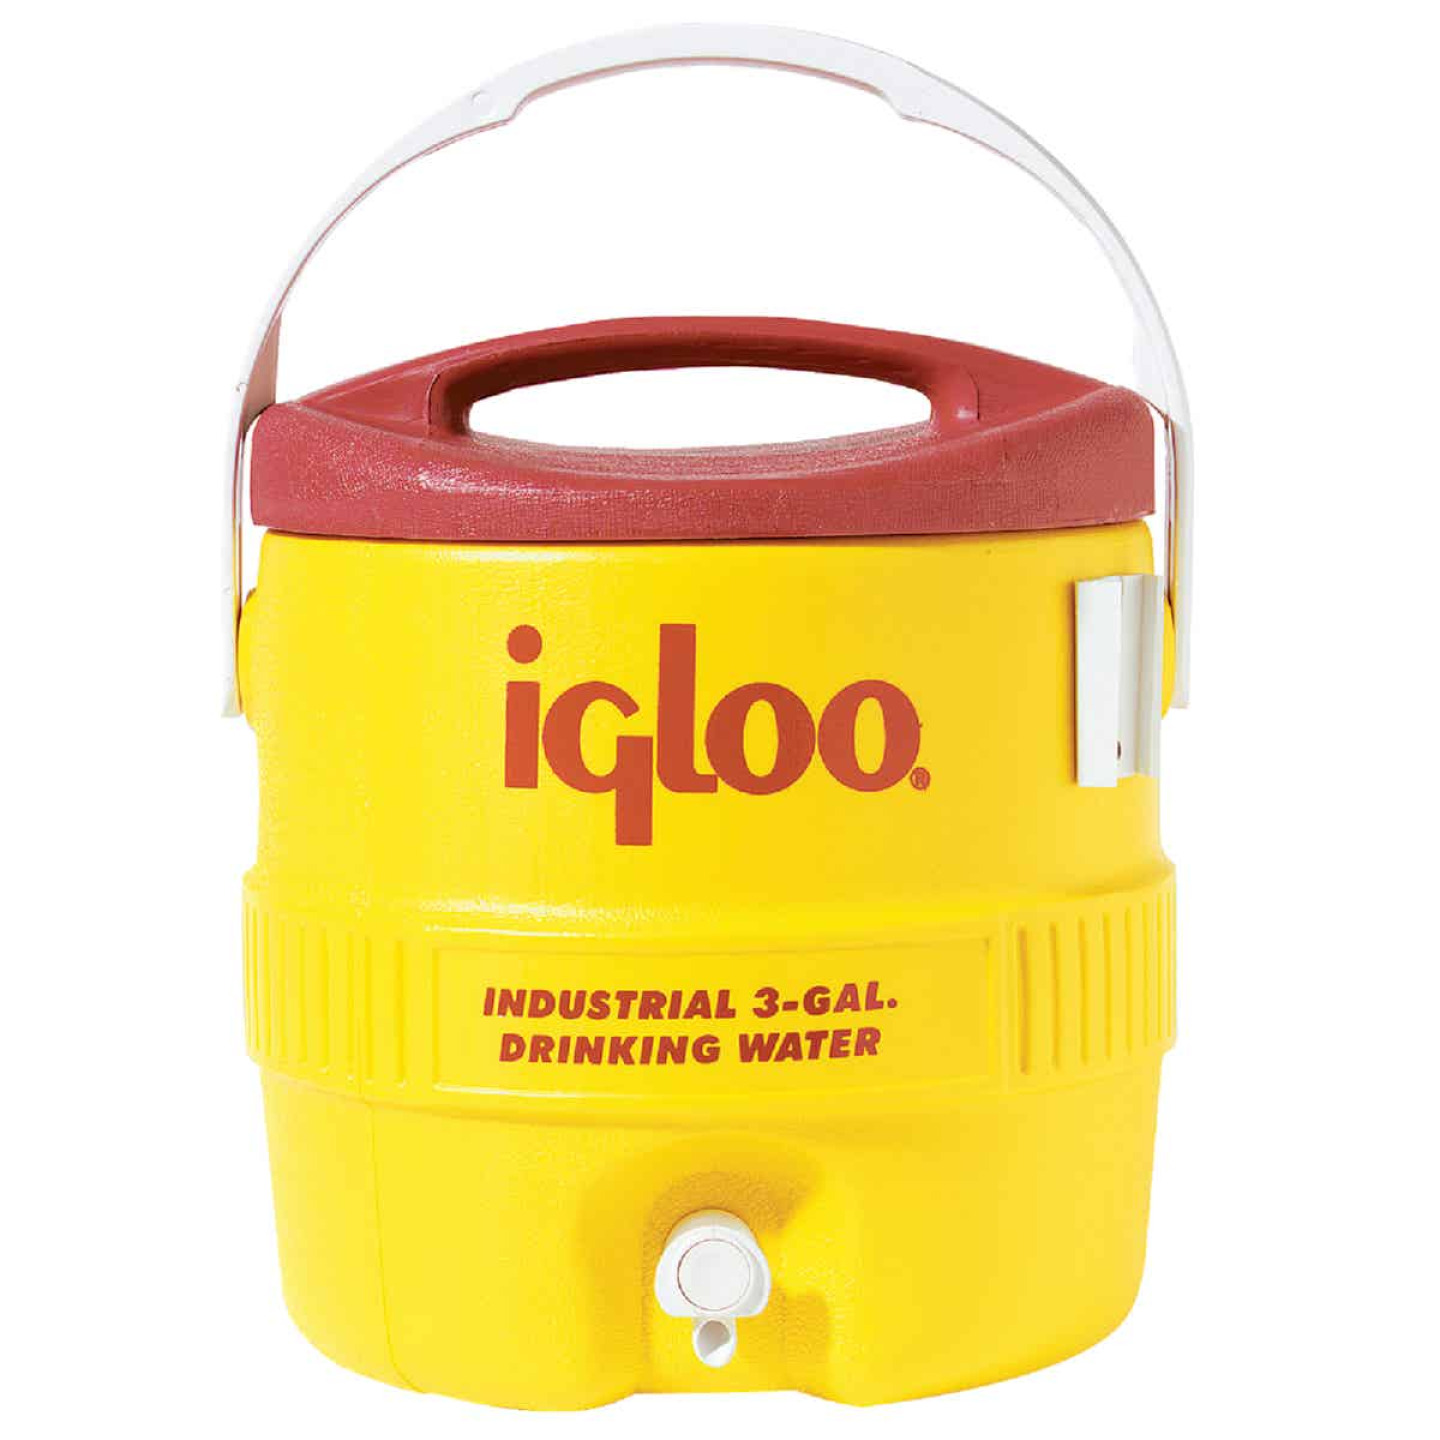 Igloo 3 Gal. Yellow Industrial Water Jug Image 1